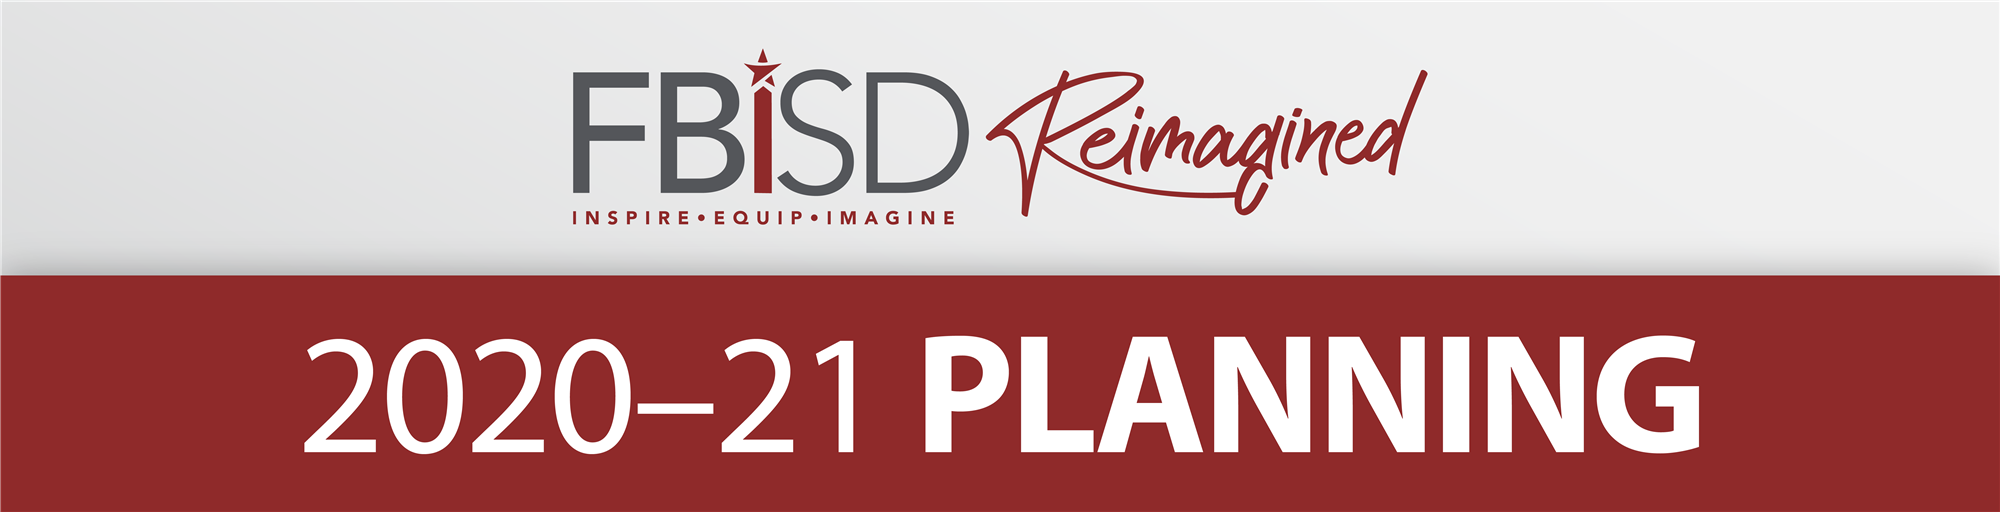 FBISD Reimagined: 2020-21 Planning